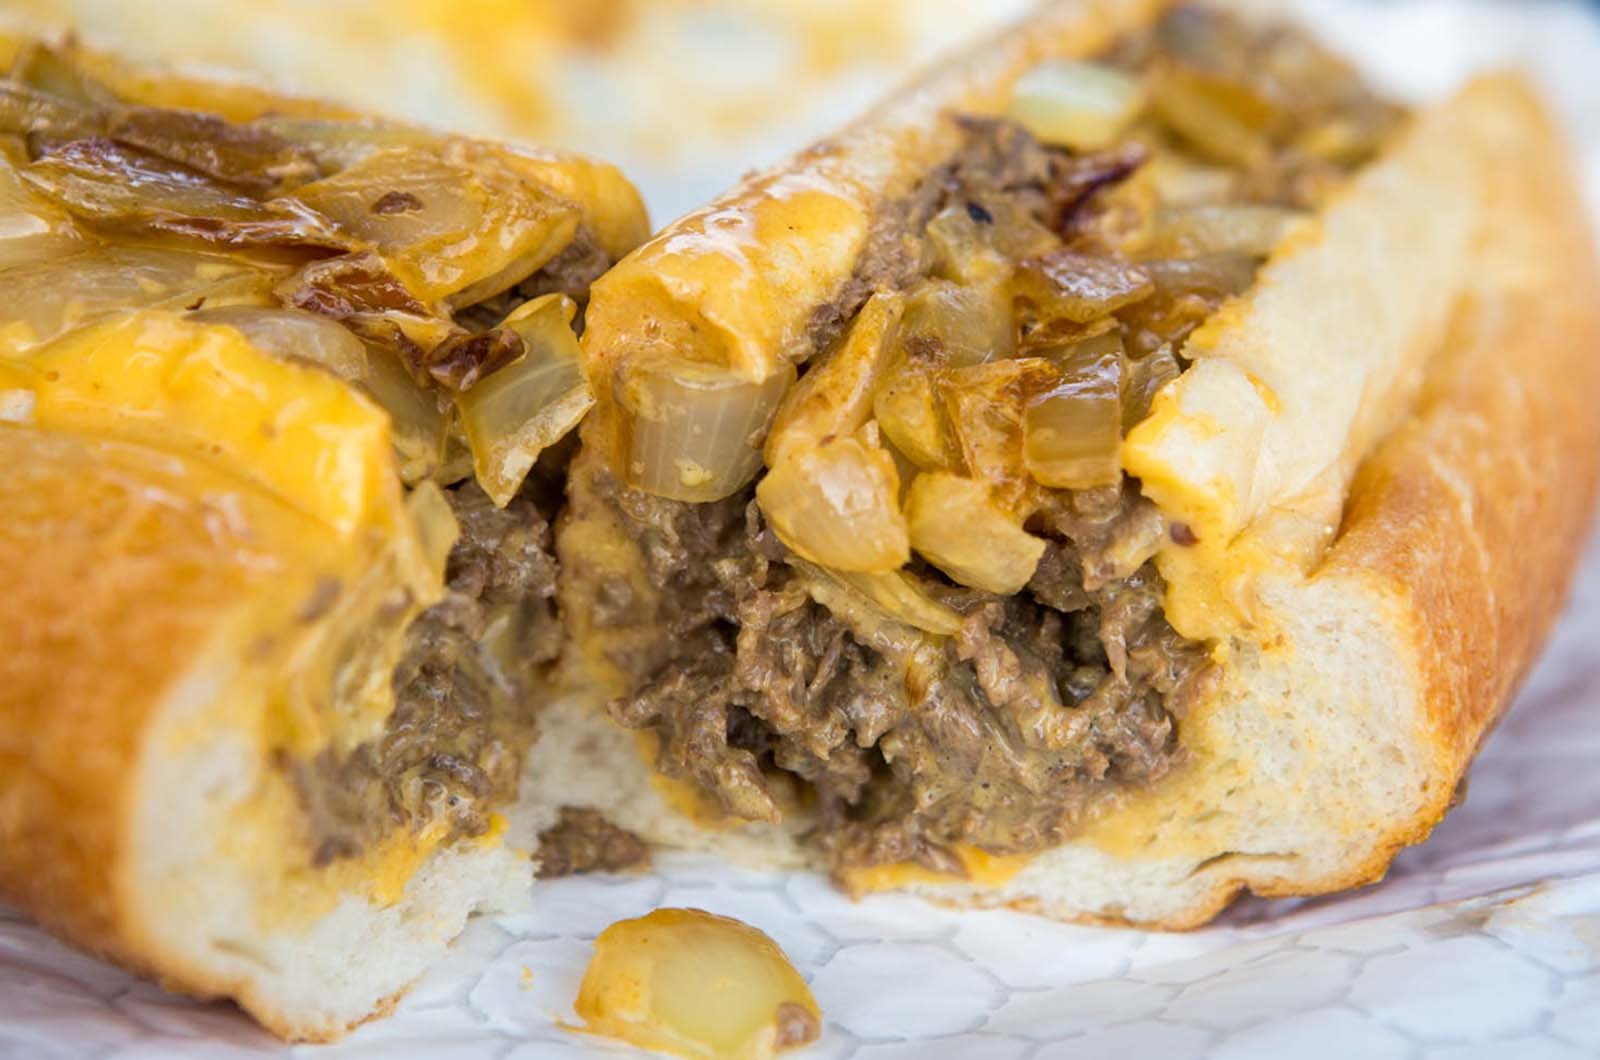 Philly's Cheesesteaks and Wings, Philly's Cheesesteaks San Jose